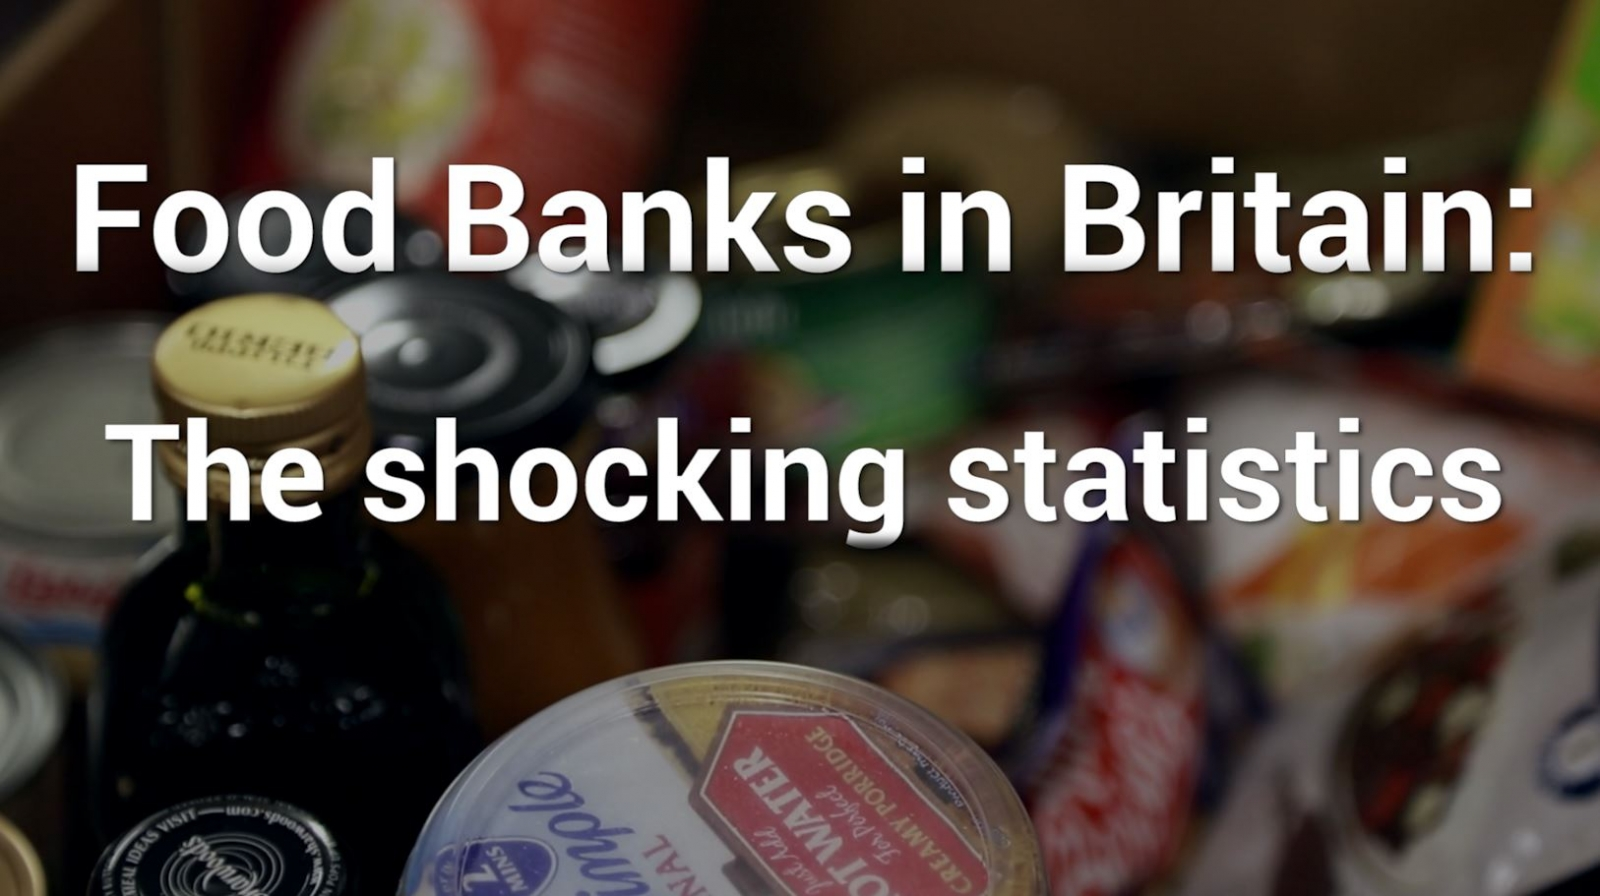 Food banks in Britain: The shocking statistics